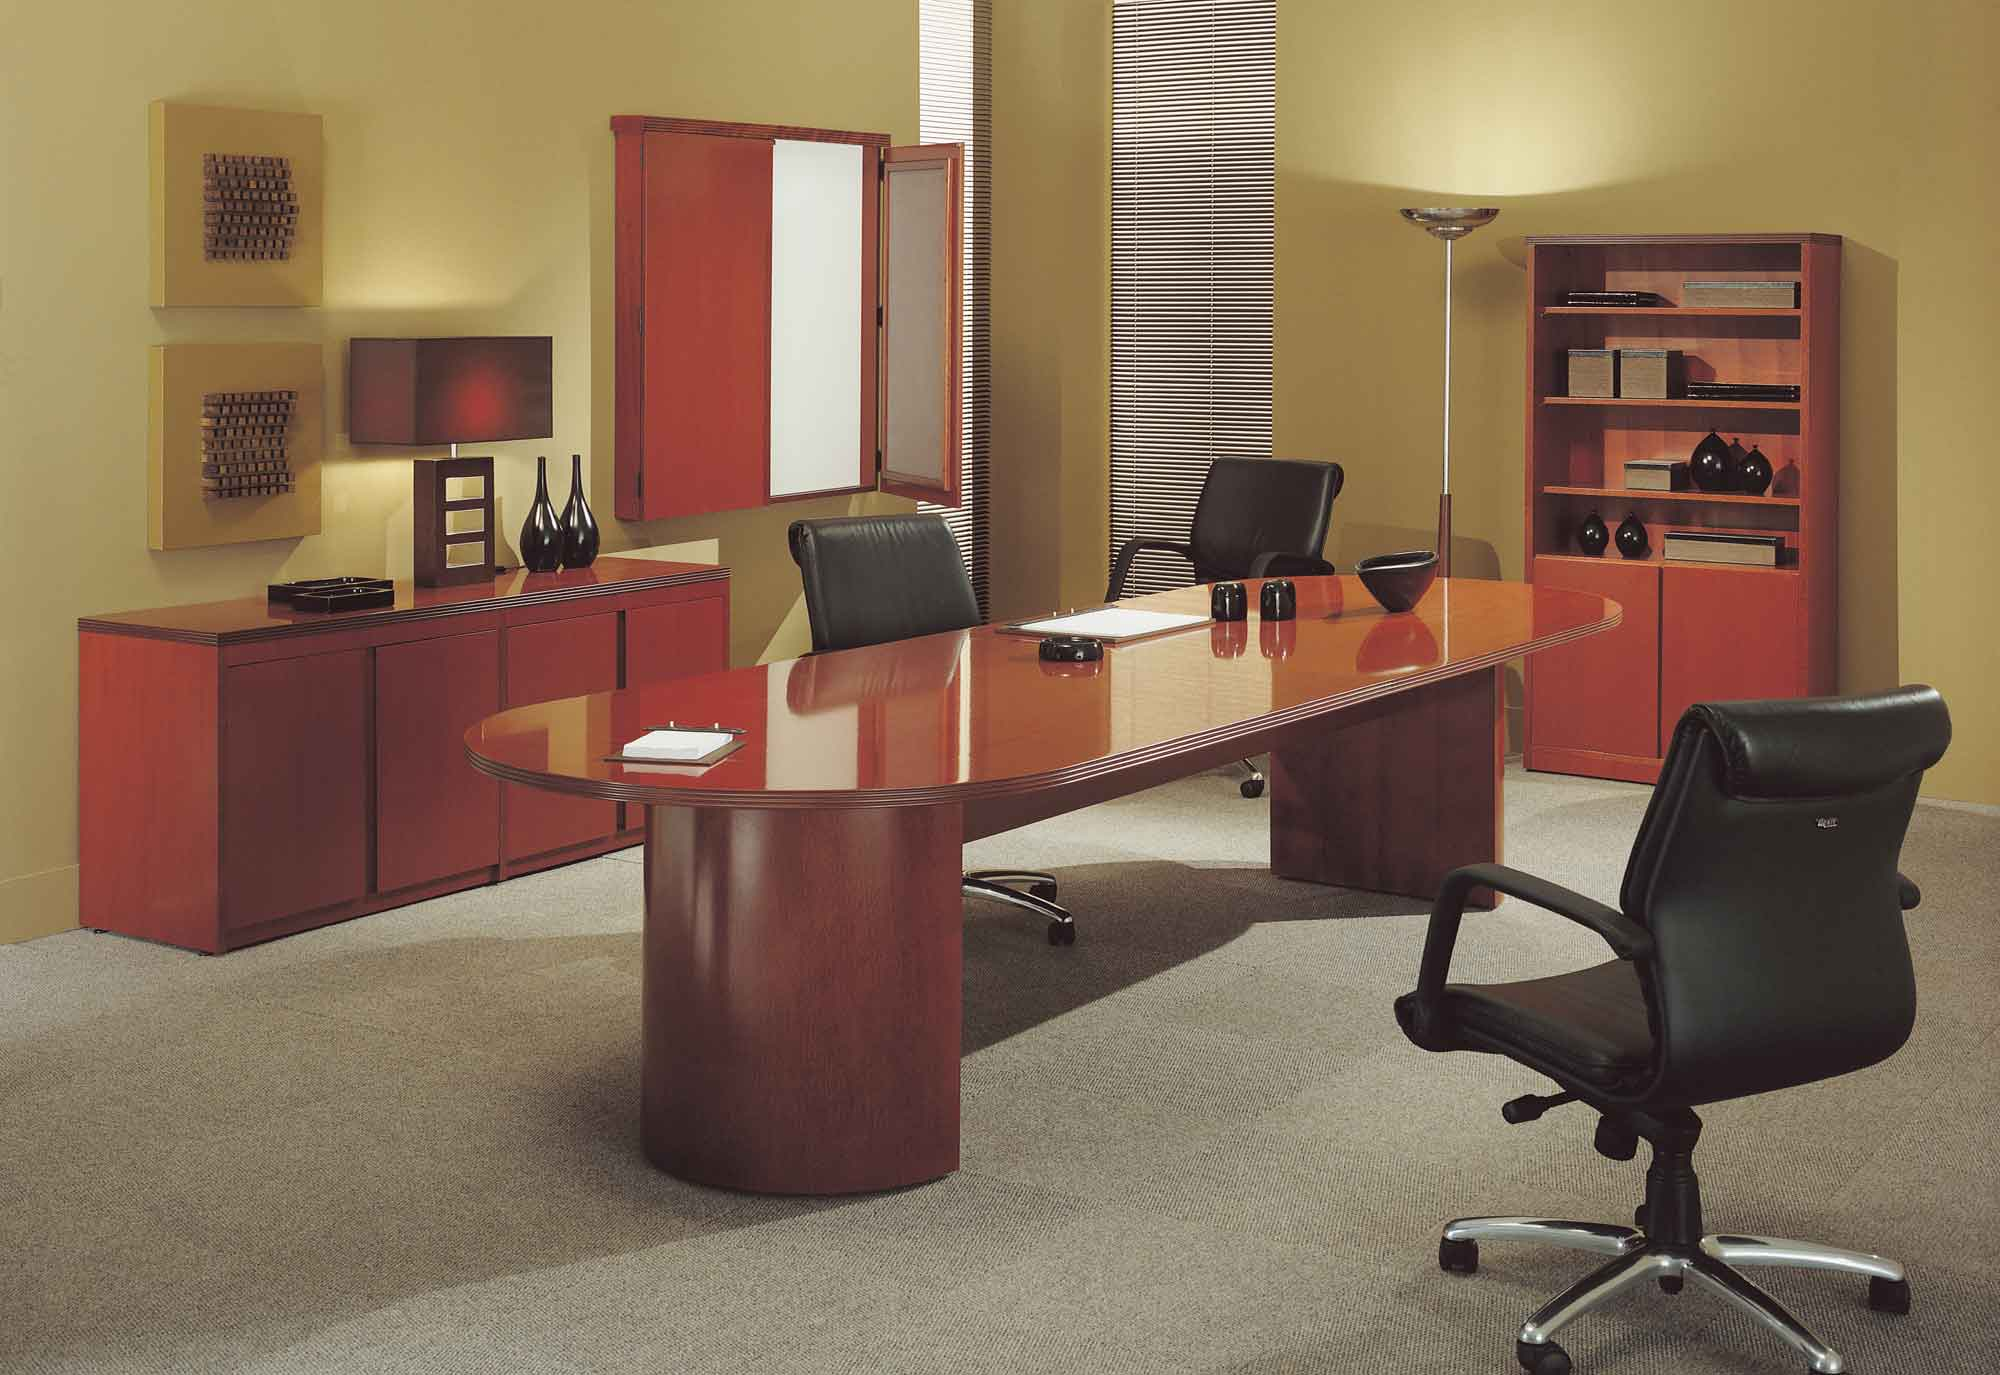 Rudnick Contemporary Office Furniture Design